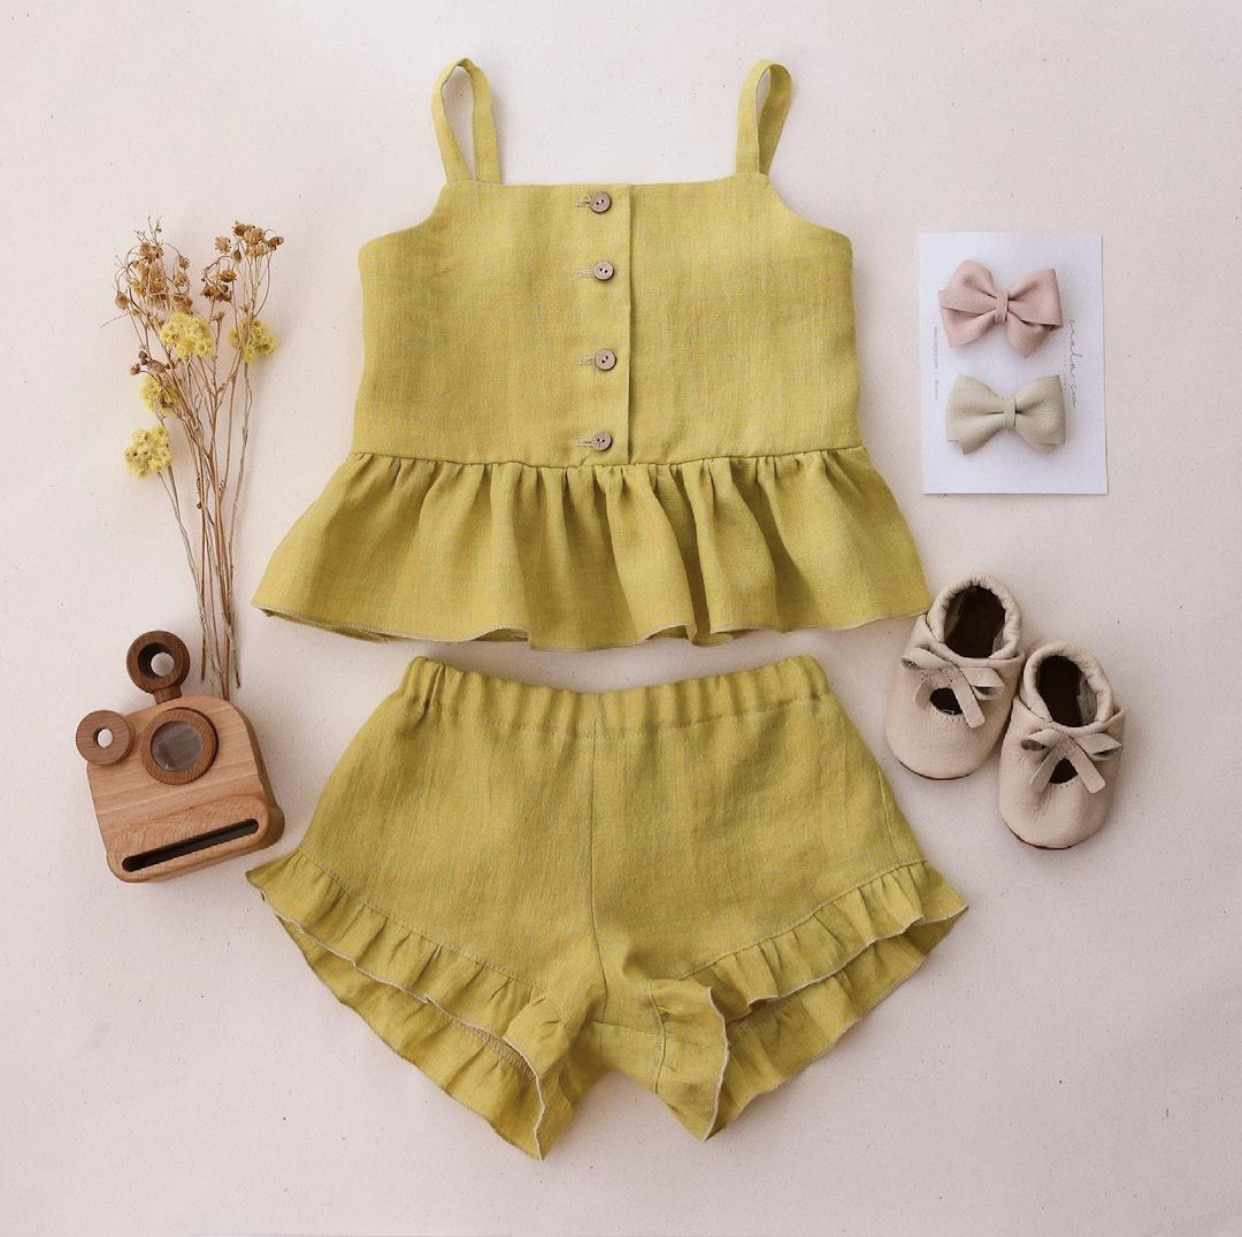 New Baby Girl Suits Summer Clothes Tops+Shorts Vest Harness Falbala Cotton Linen Solid Color Outfits Bebe Infant Clothing Sets